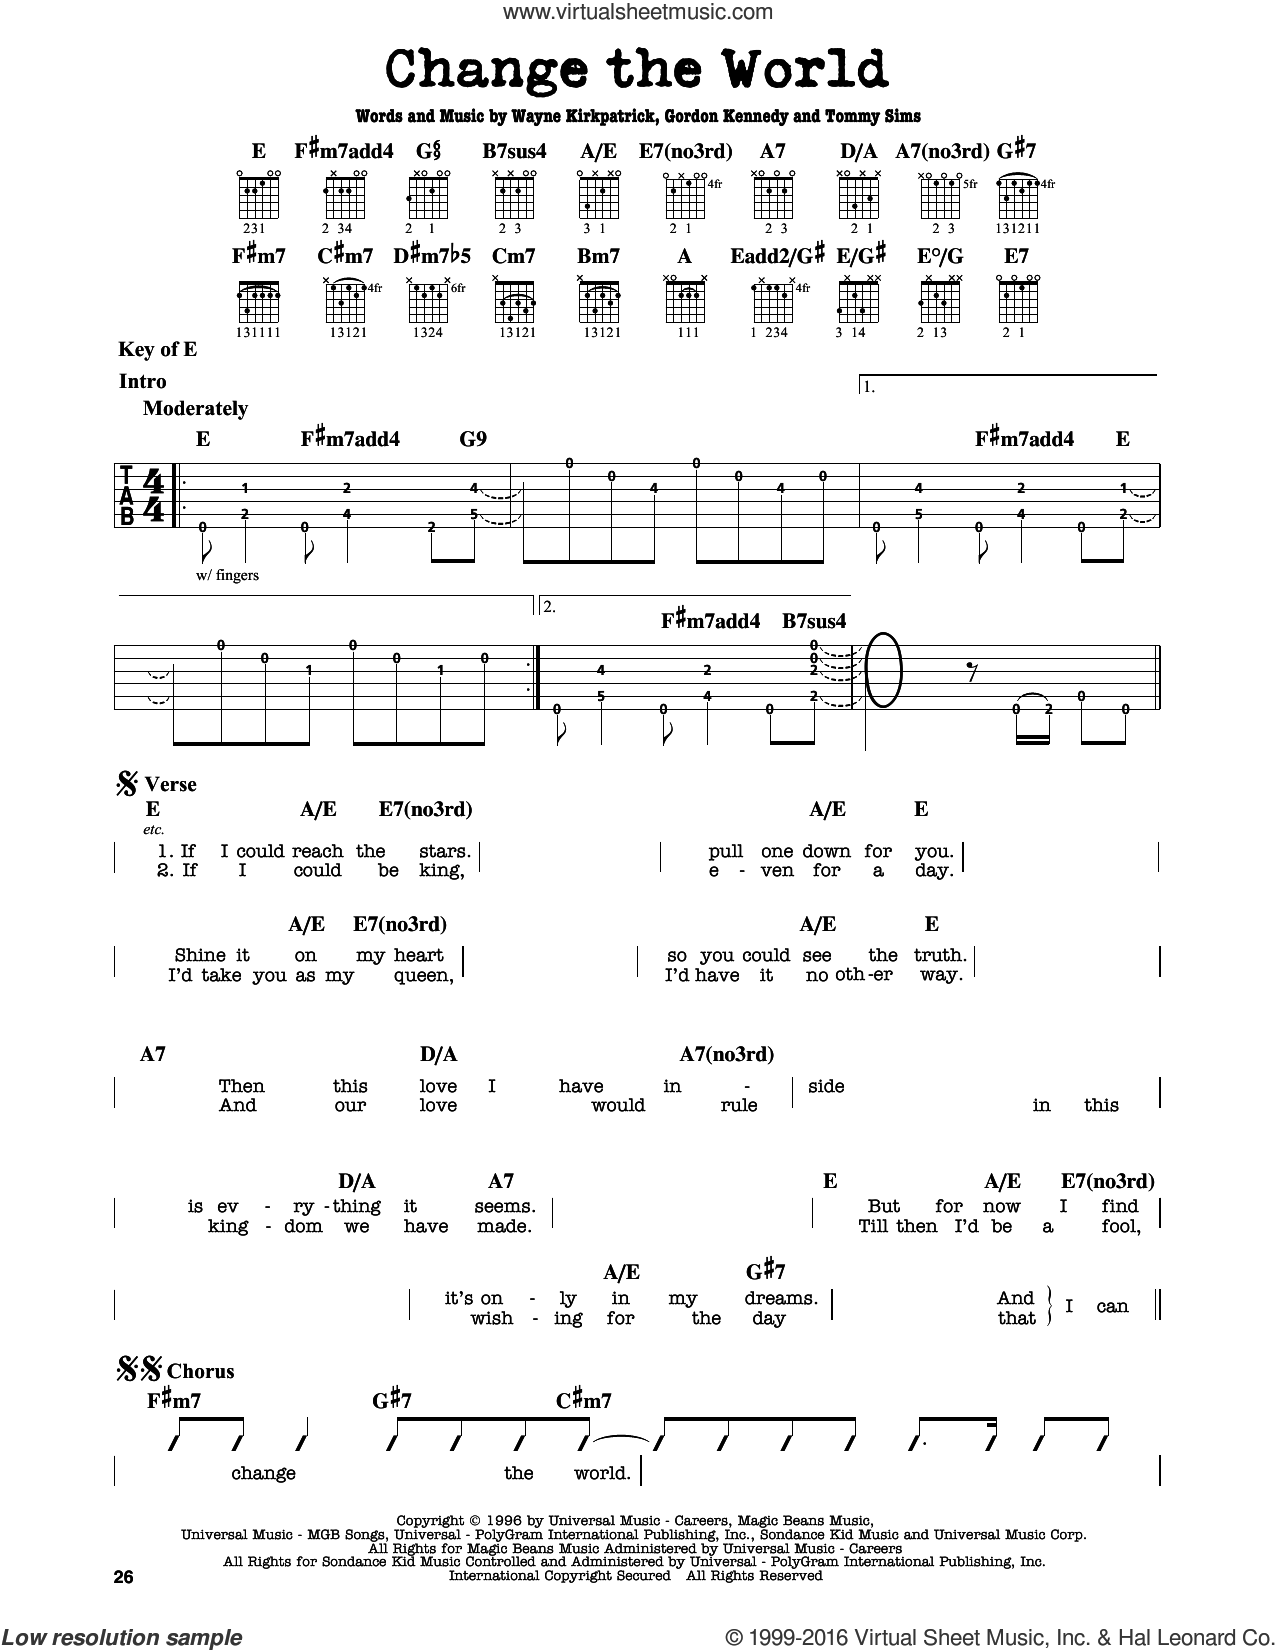 Change The World sheet music for guitar solo (lead sheet) by Eric Clapton, Wynonna, Gordon Kennedy, Tommy Sims and Wayne Kirkpatrick, intermediate guitar (lead sheet). Score Image Preview.